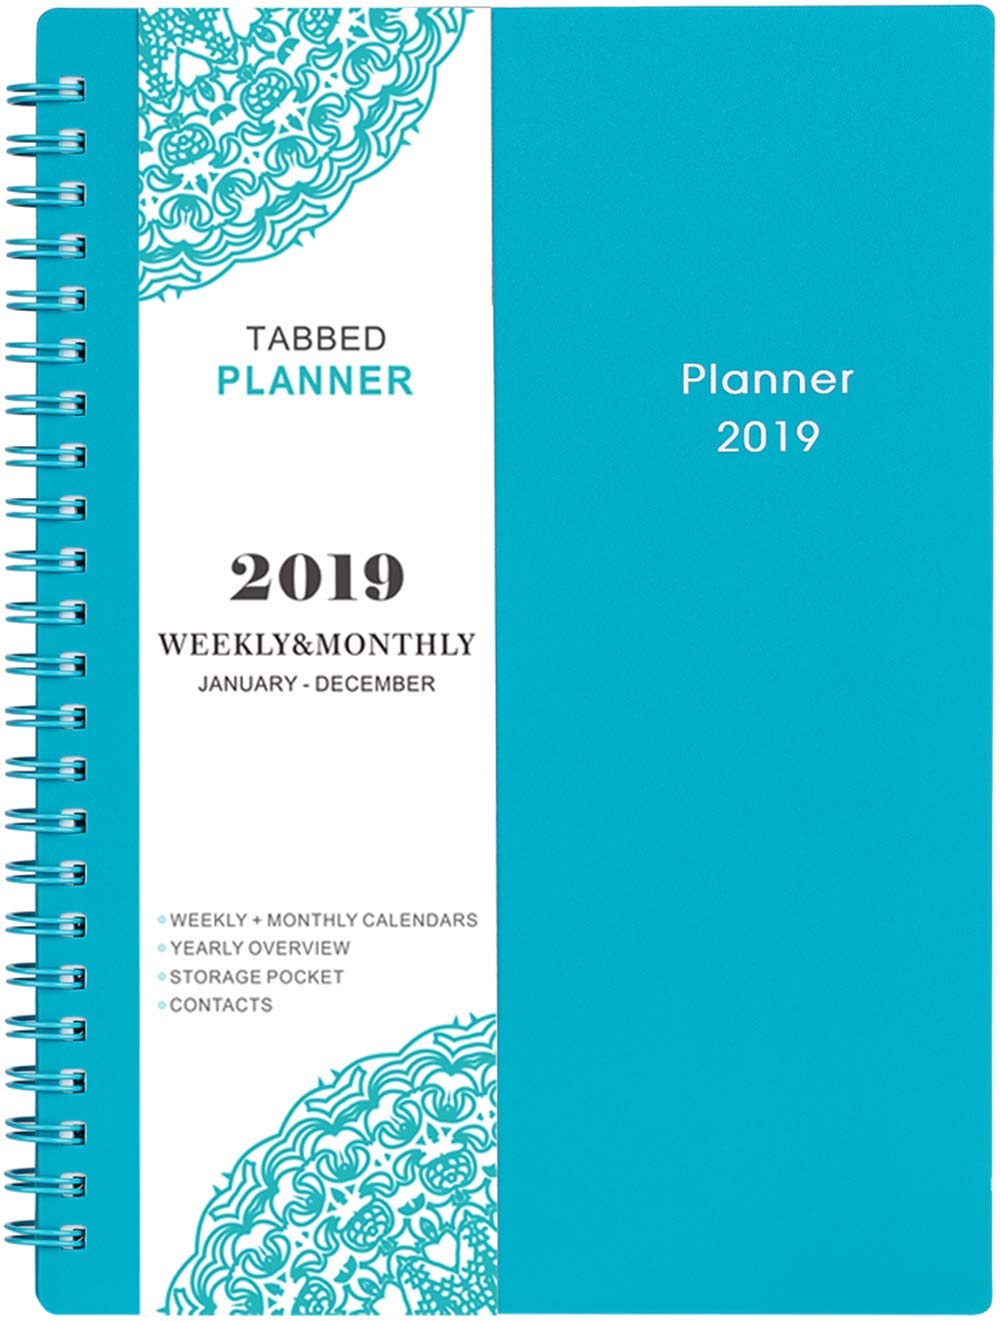 2019 Planner - Weekly & Monthly Planner 2019, Flexible Cover, 12 Monthly Tabs, Twin-Wire Binding with Two-Sided Inner Pocket, 5'' x 8'' - BooQool